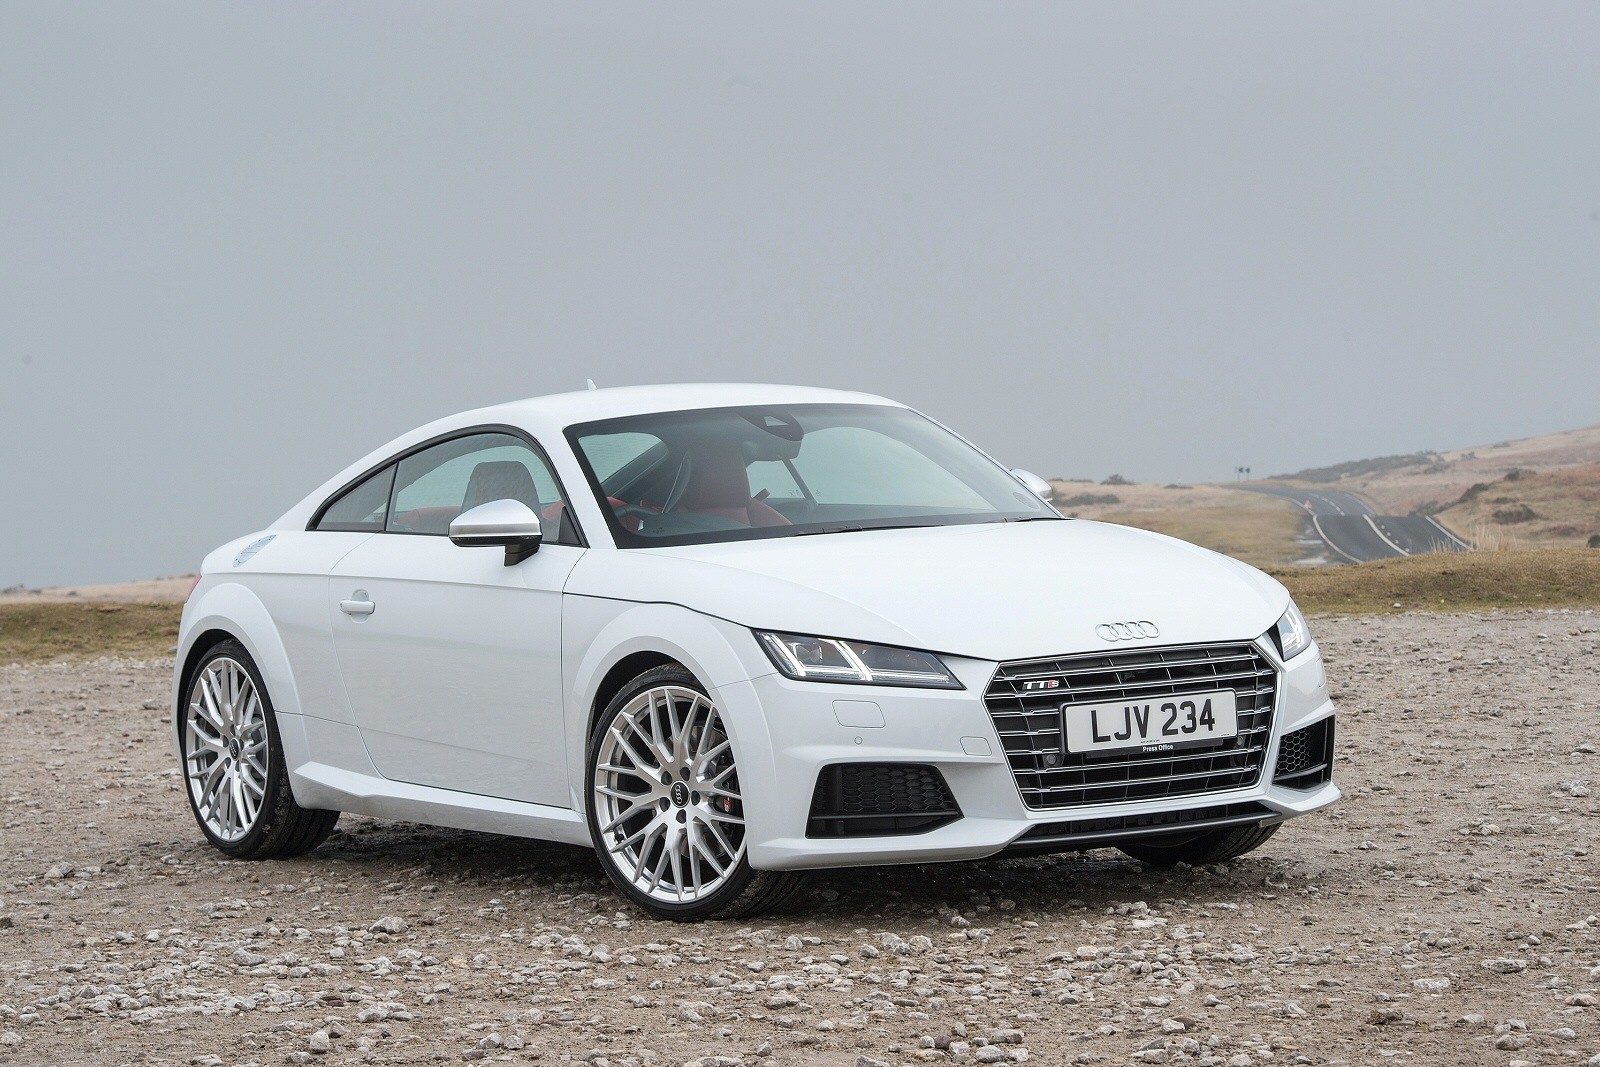 new audi tt 2 0t fsi quattro tts 2dr s tronic petrol coupe for sale south hereford garages. Black Bedroom Furniture Sets. Home Design Ideas